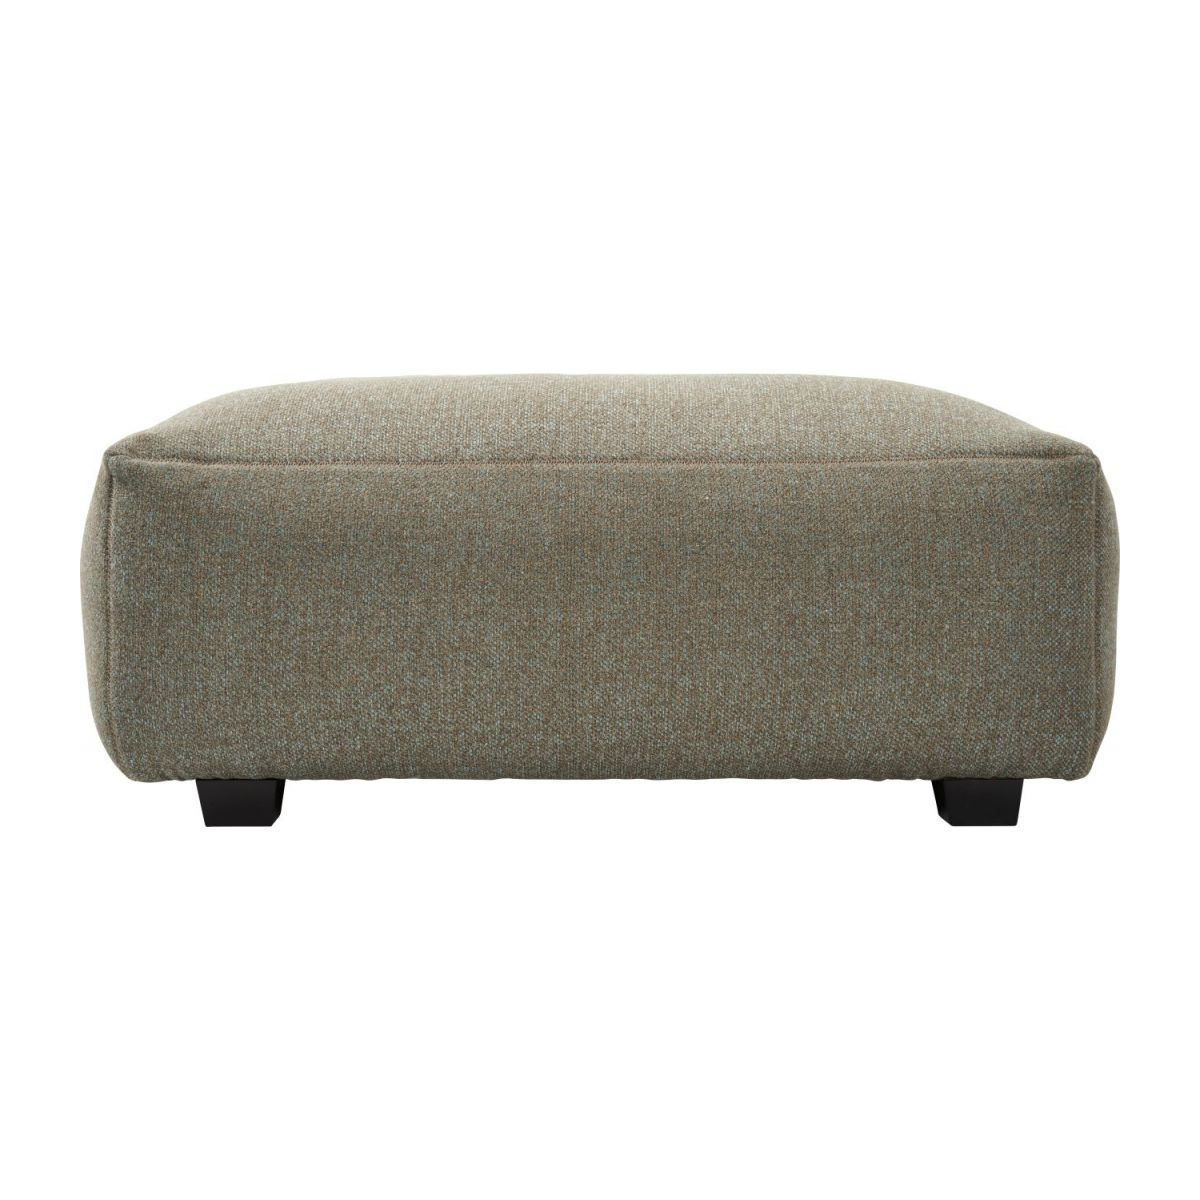 Footstool in Lecce fabric, slade grey n°3